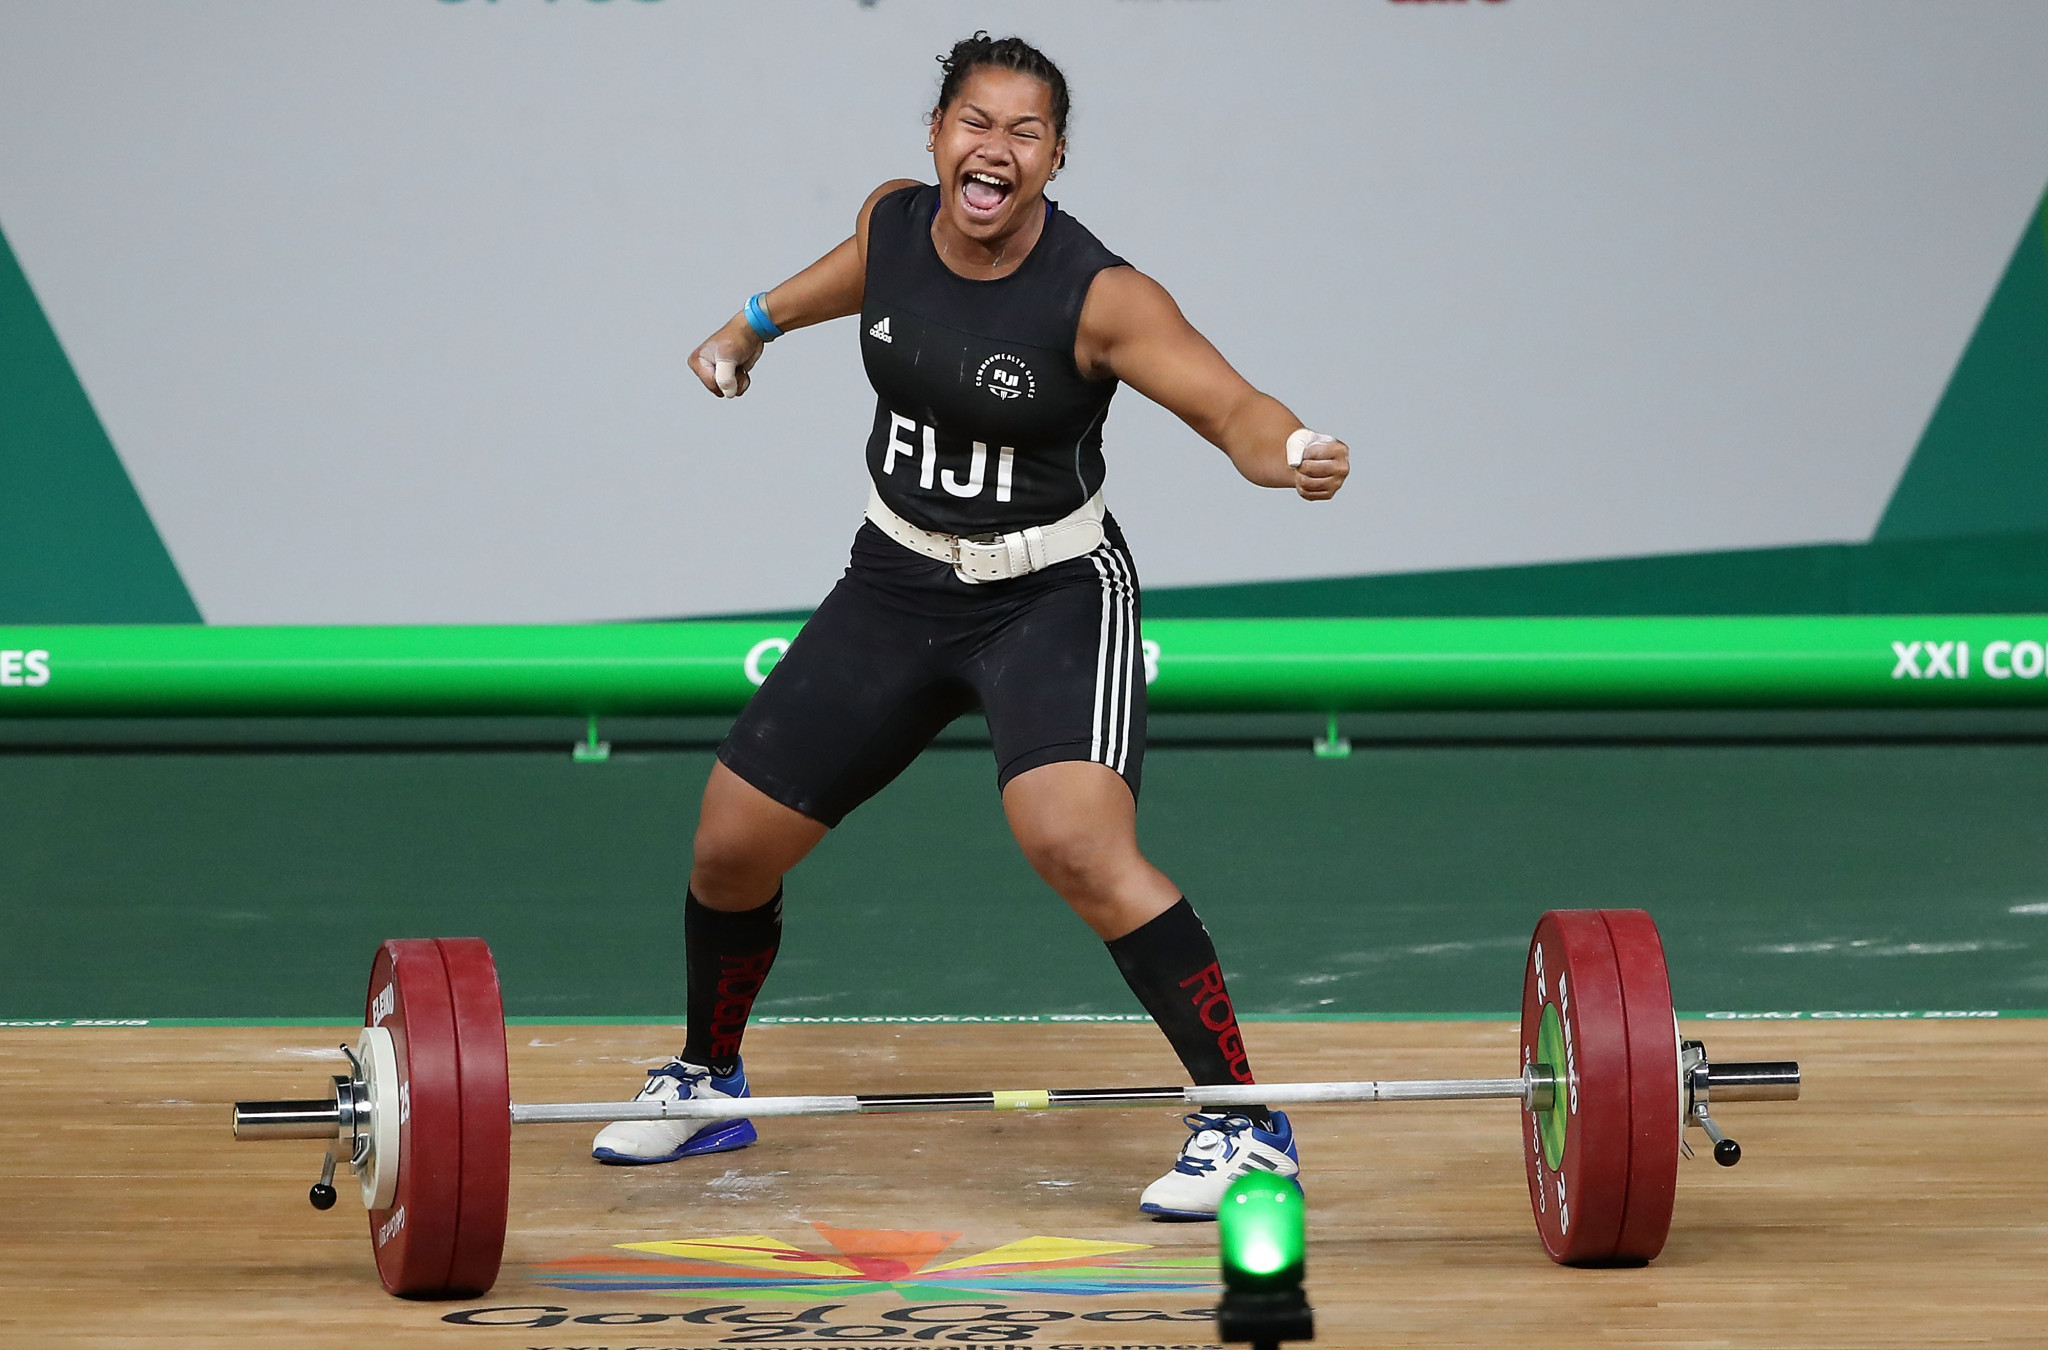 Eileen Cikamatana competed for Fiji at the 2018 Commonwealth Games in Gold Coast ©Getty Images